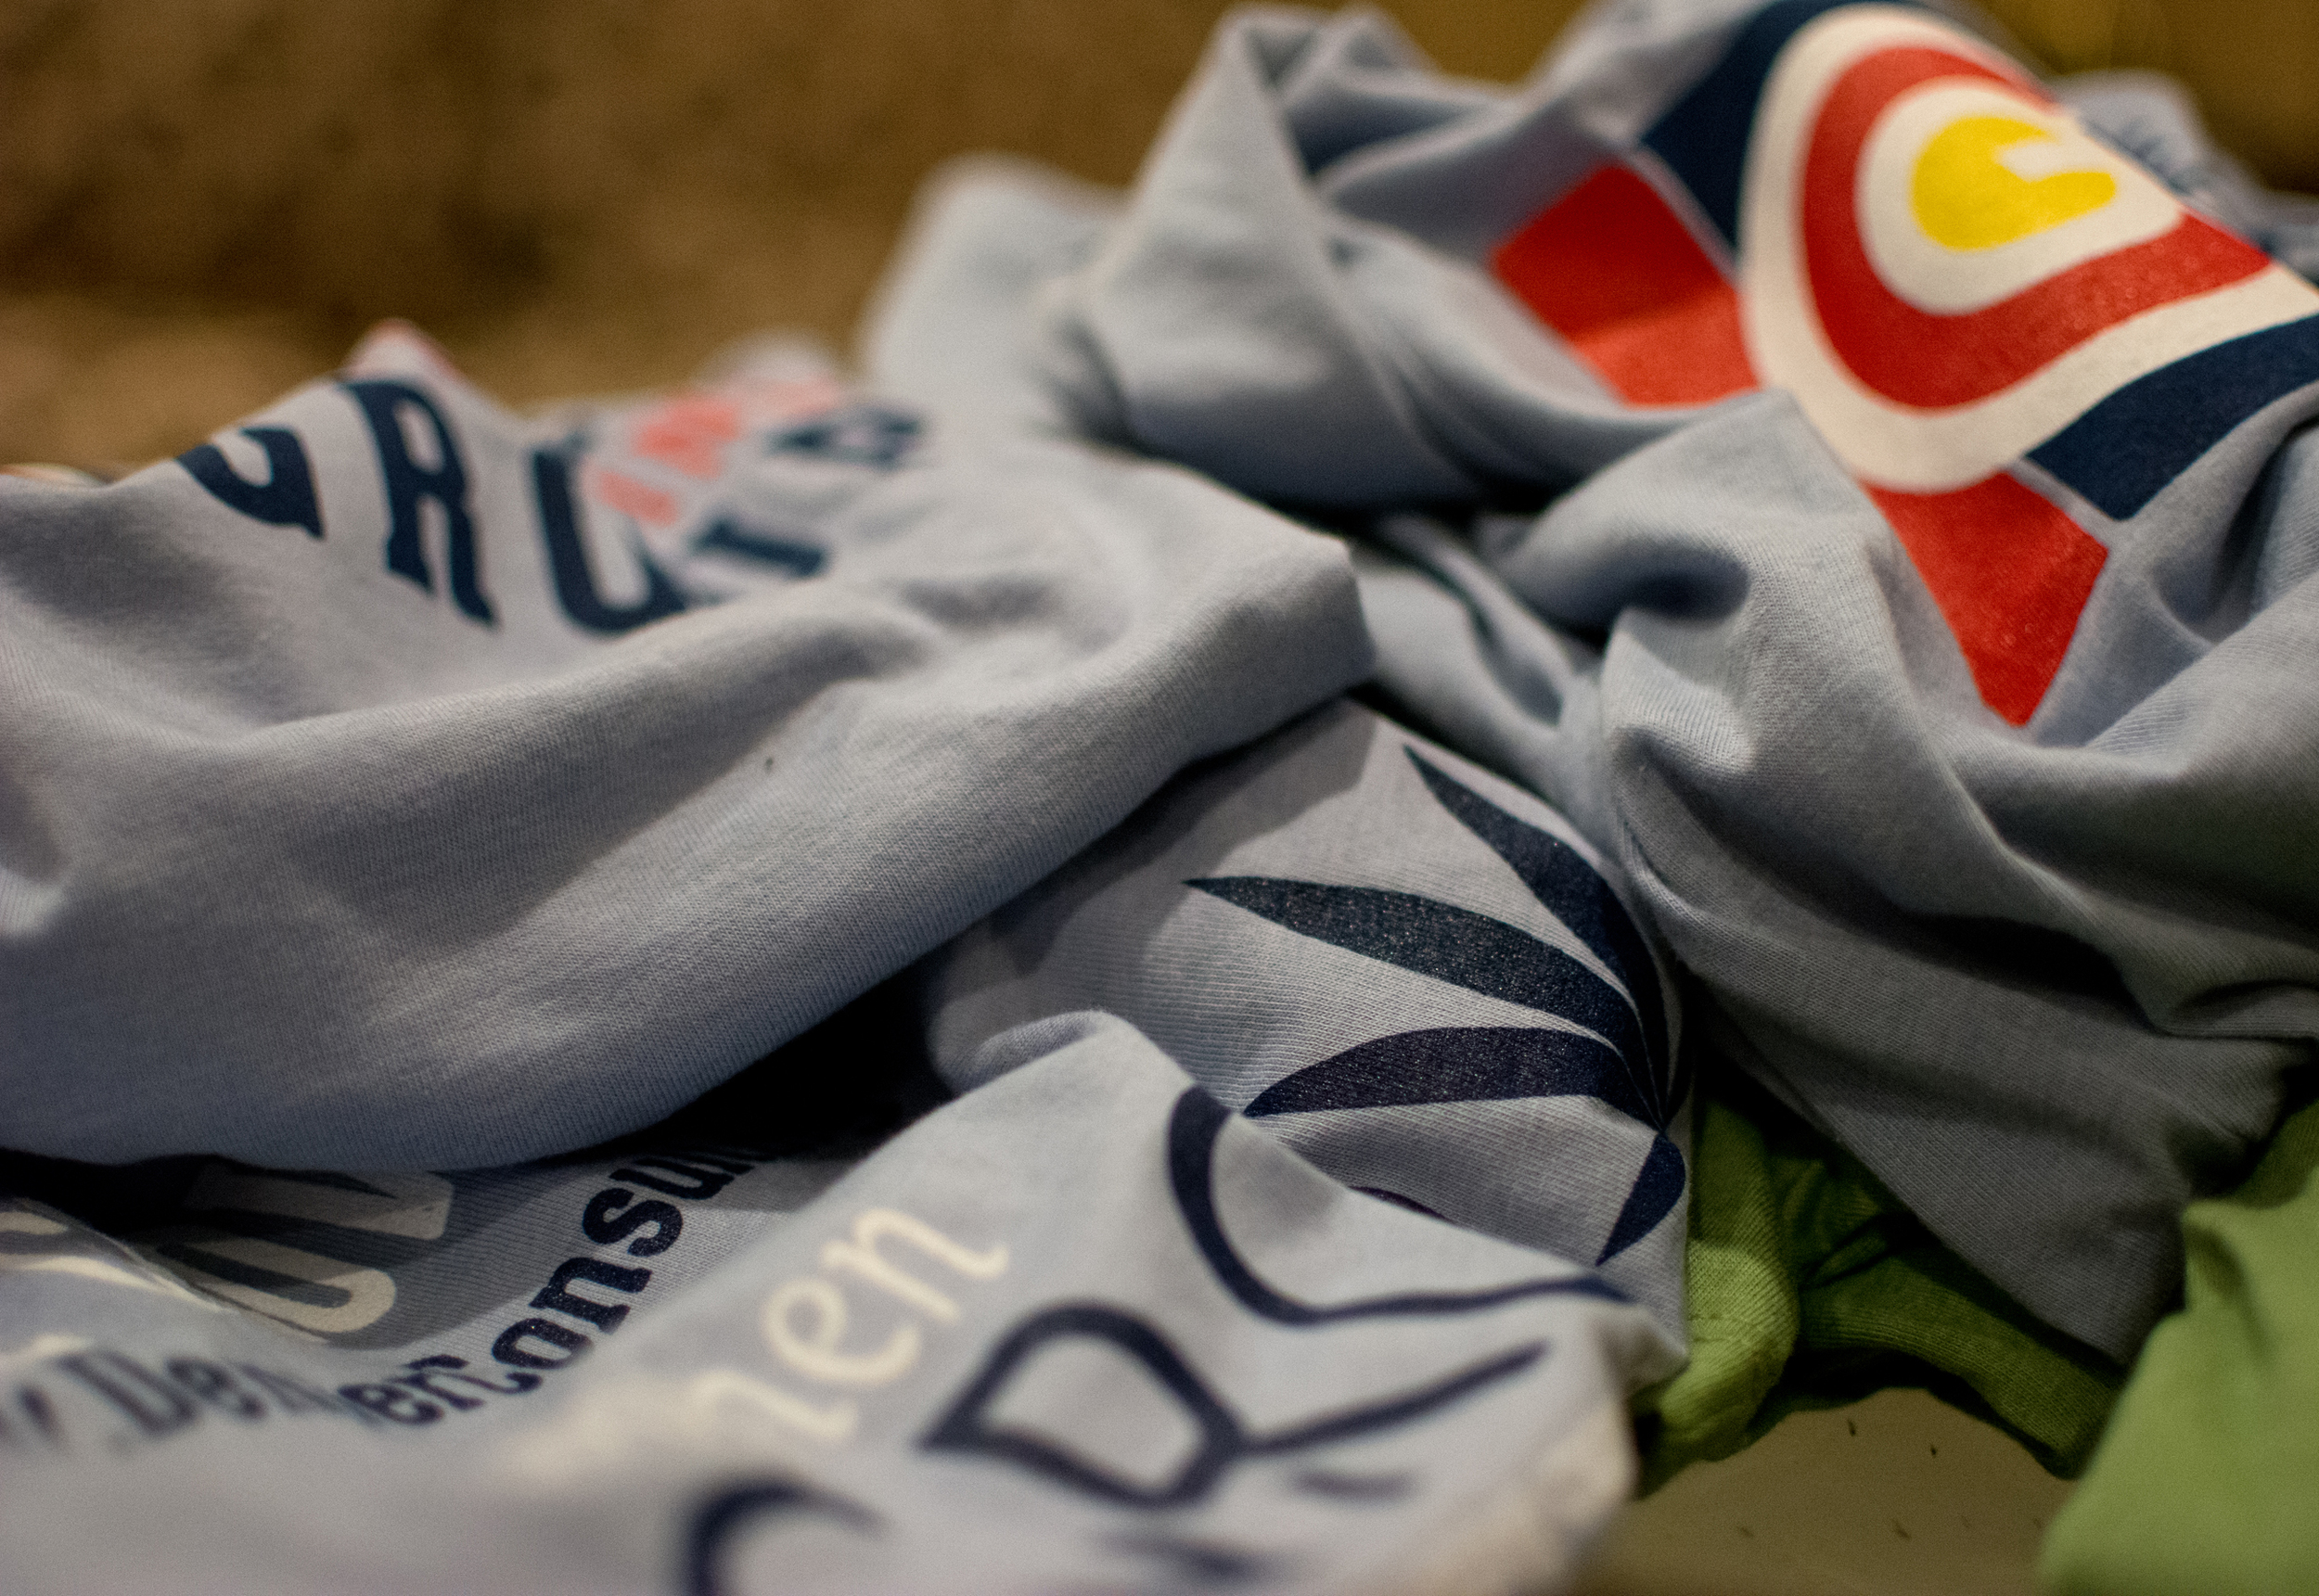 Denver Consulting Group  and  Canna Score  partnered up with Women Grow to make some tshirts!